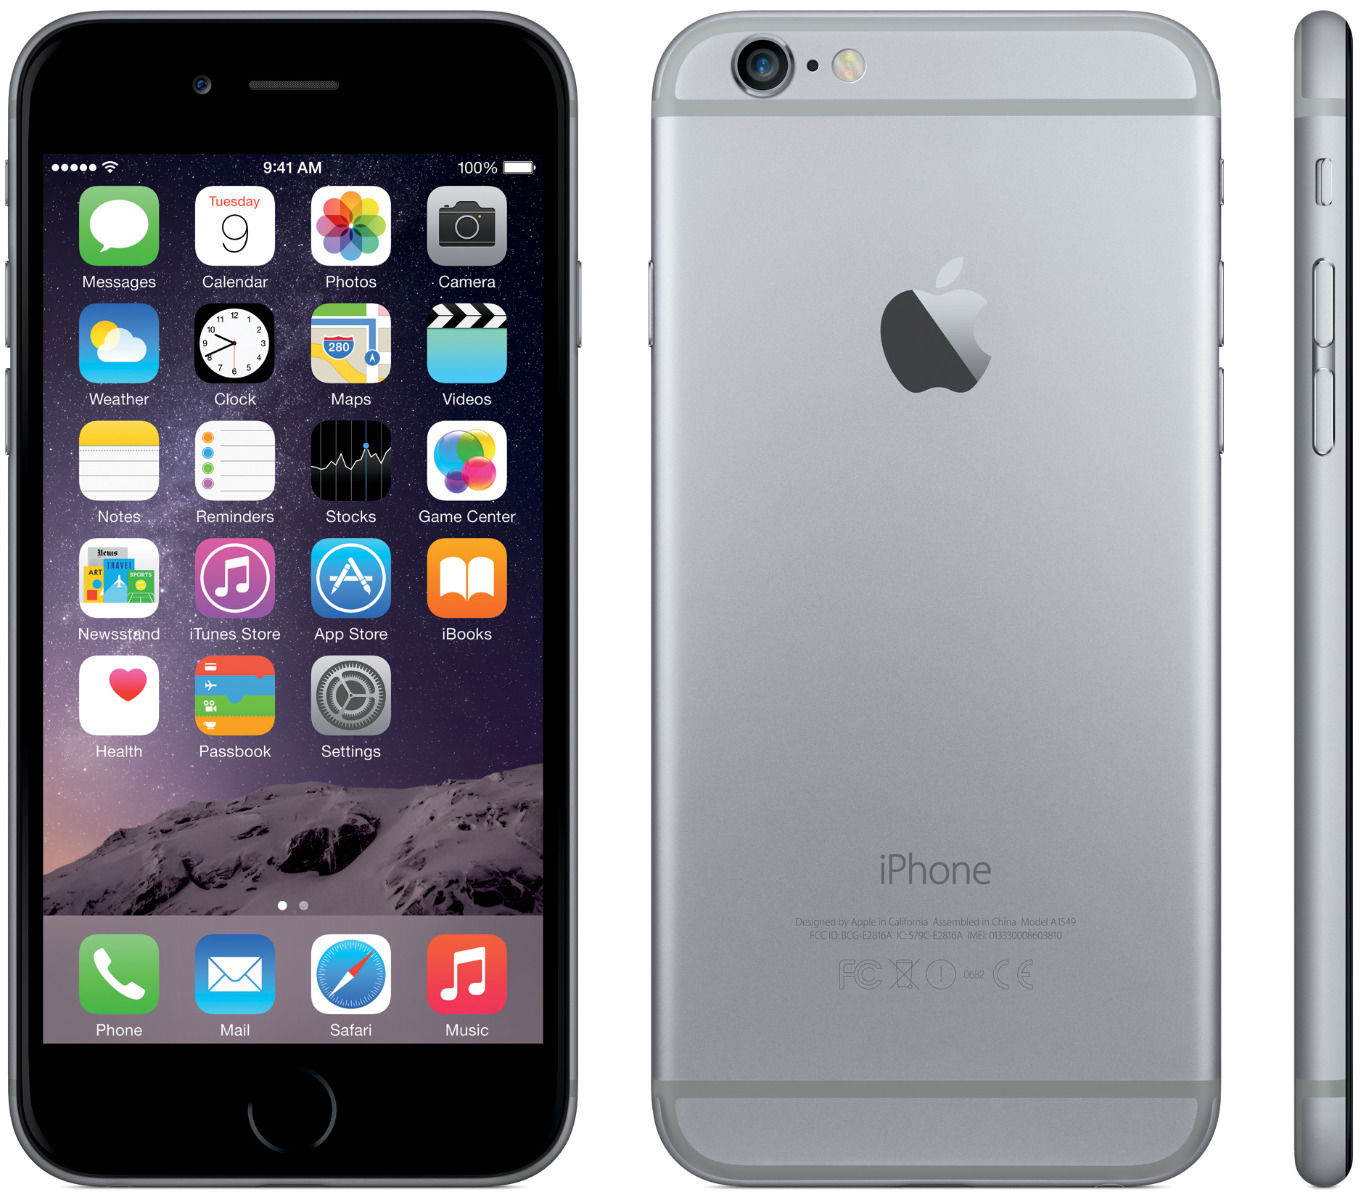 iphone 5 16gb unlocked apple iphone 6 16gb unlocked gsm ios smartphone ebay 14463